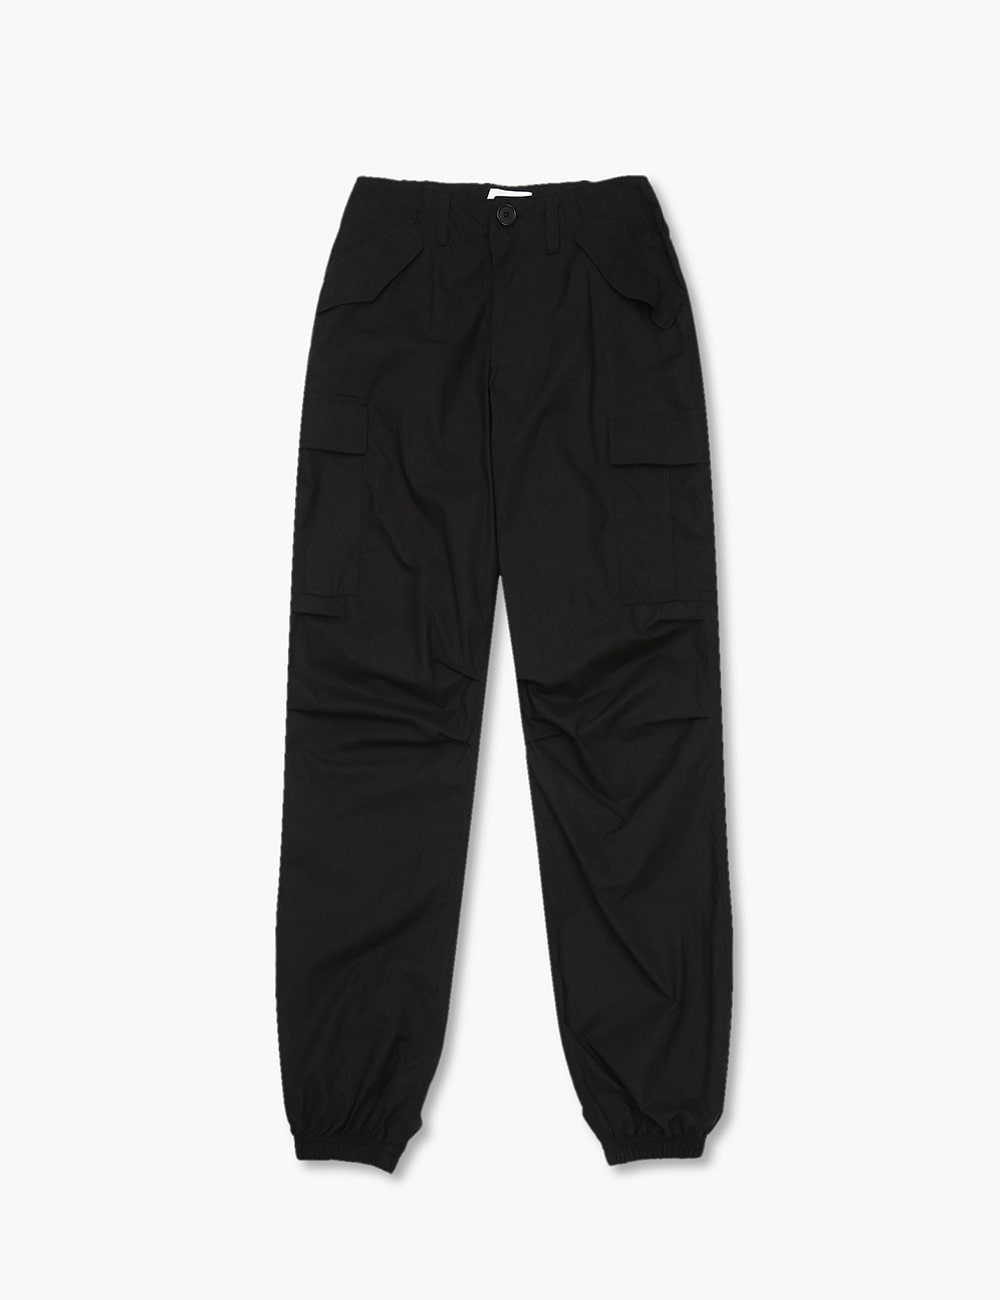 COTTON POPLIN M65 CARGO PANTS (BLACK)